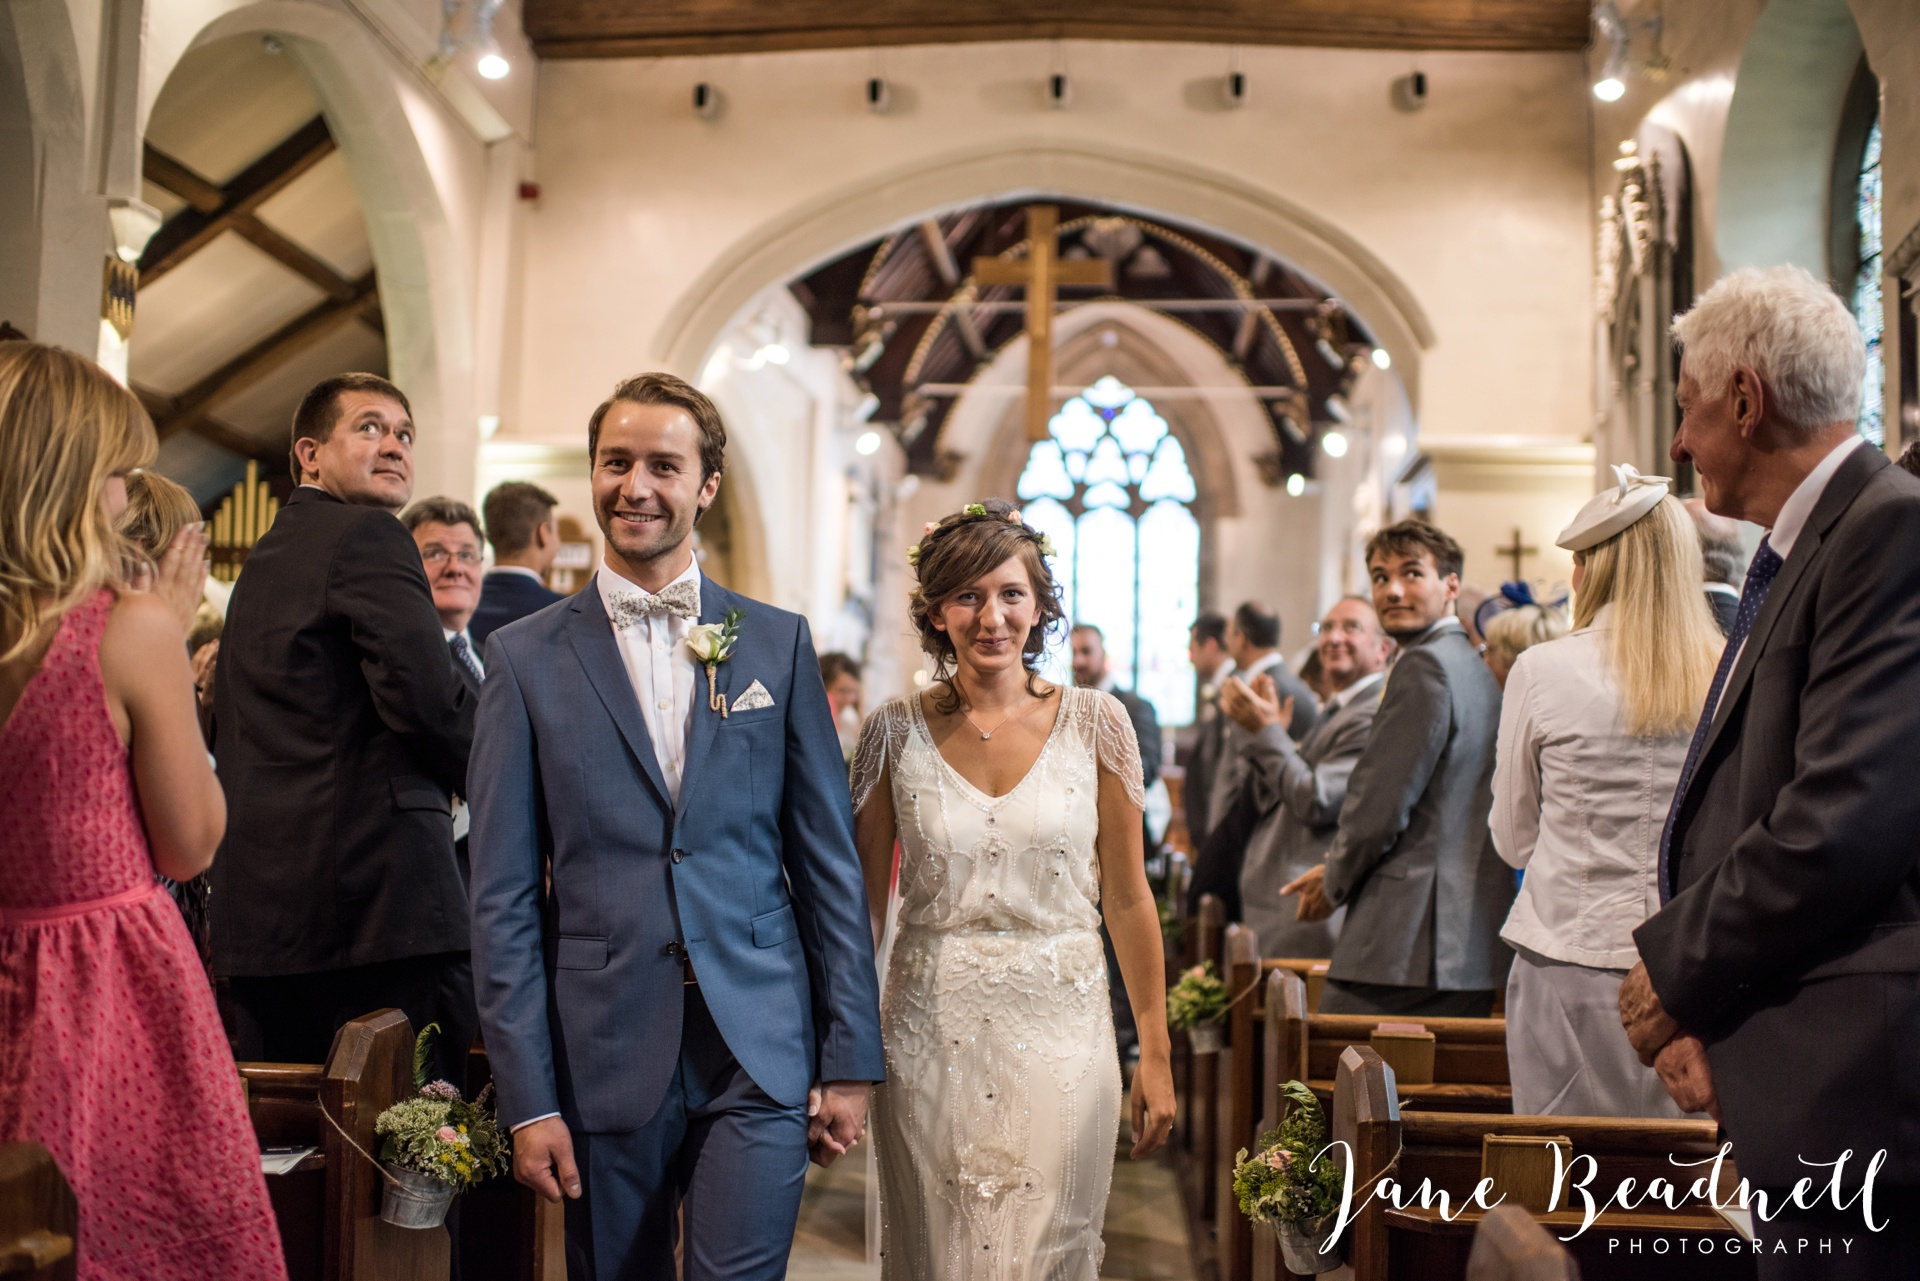 Jane Beadnell fine art wedding photographer Leeds_0050